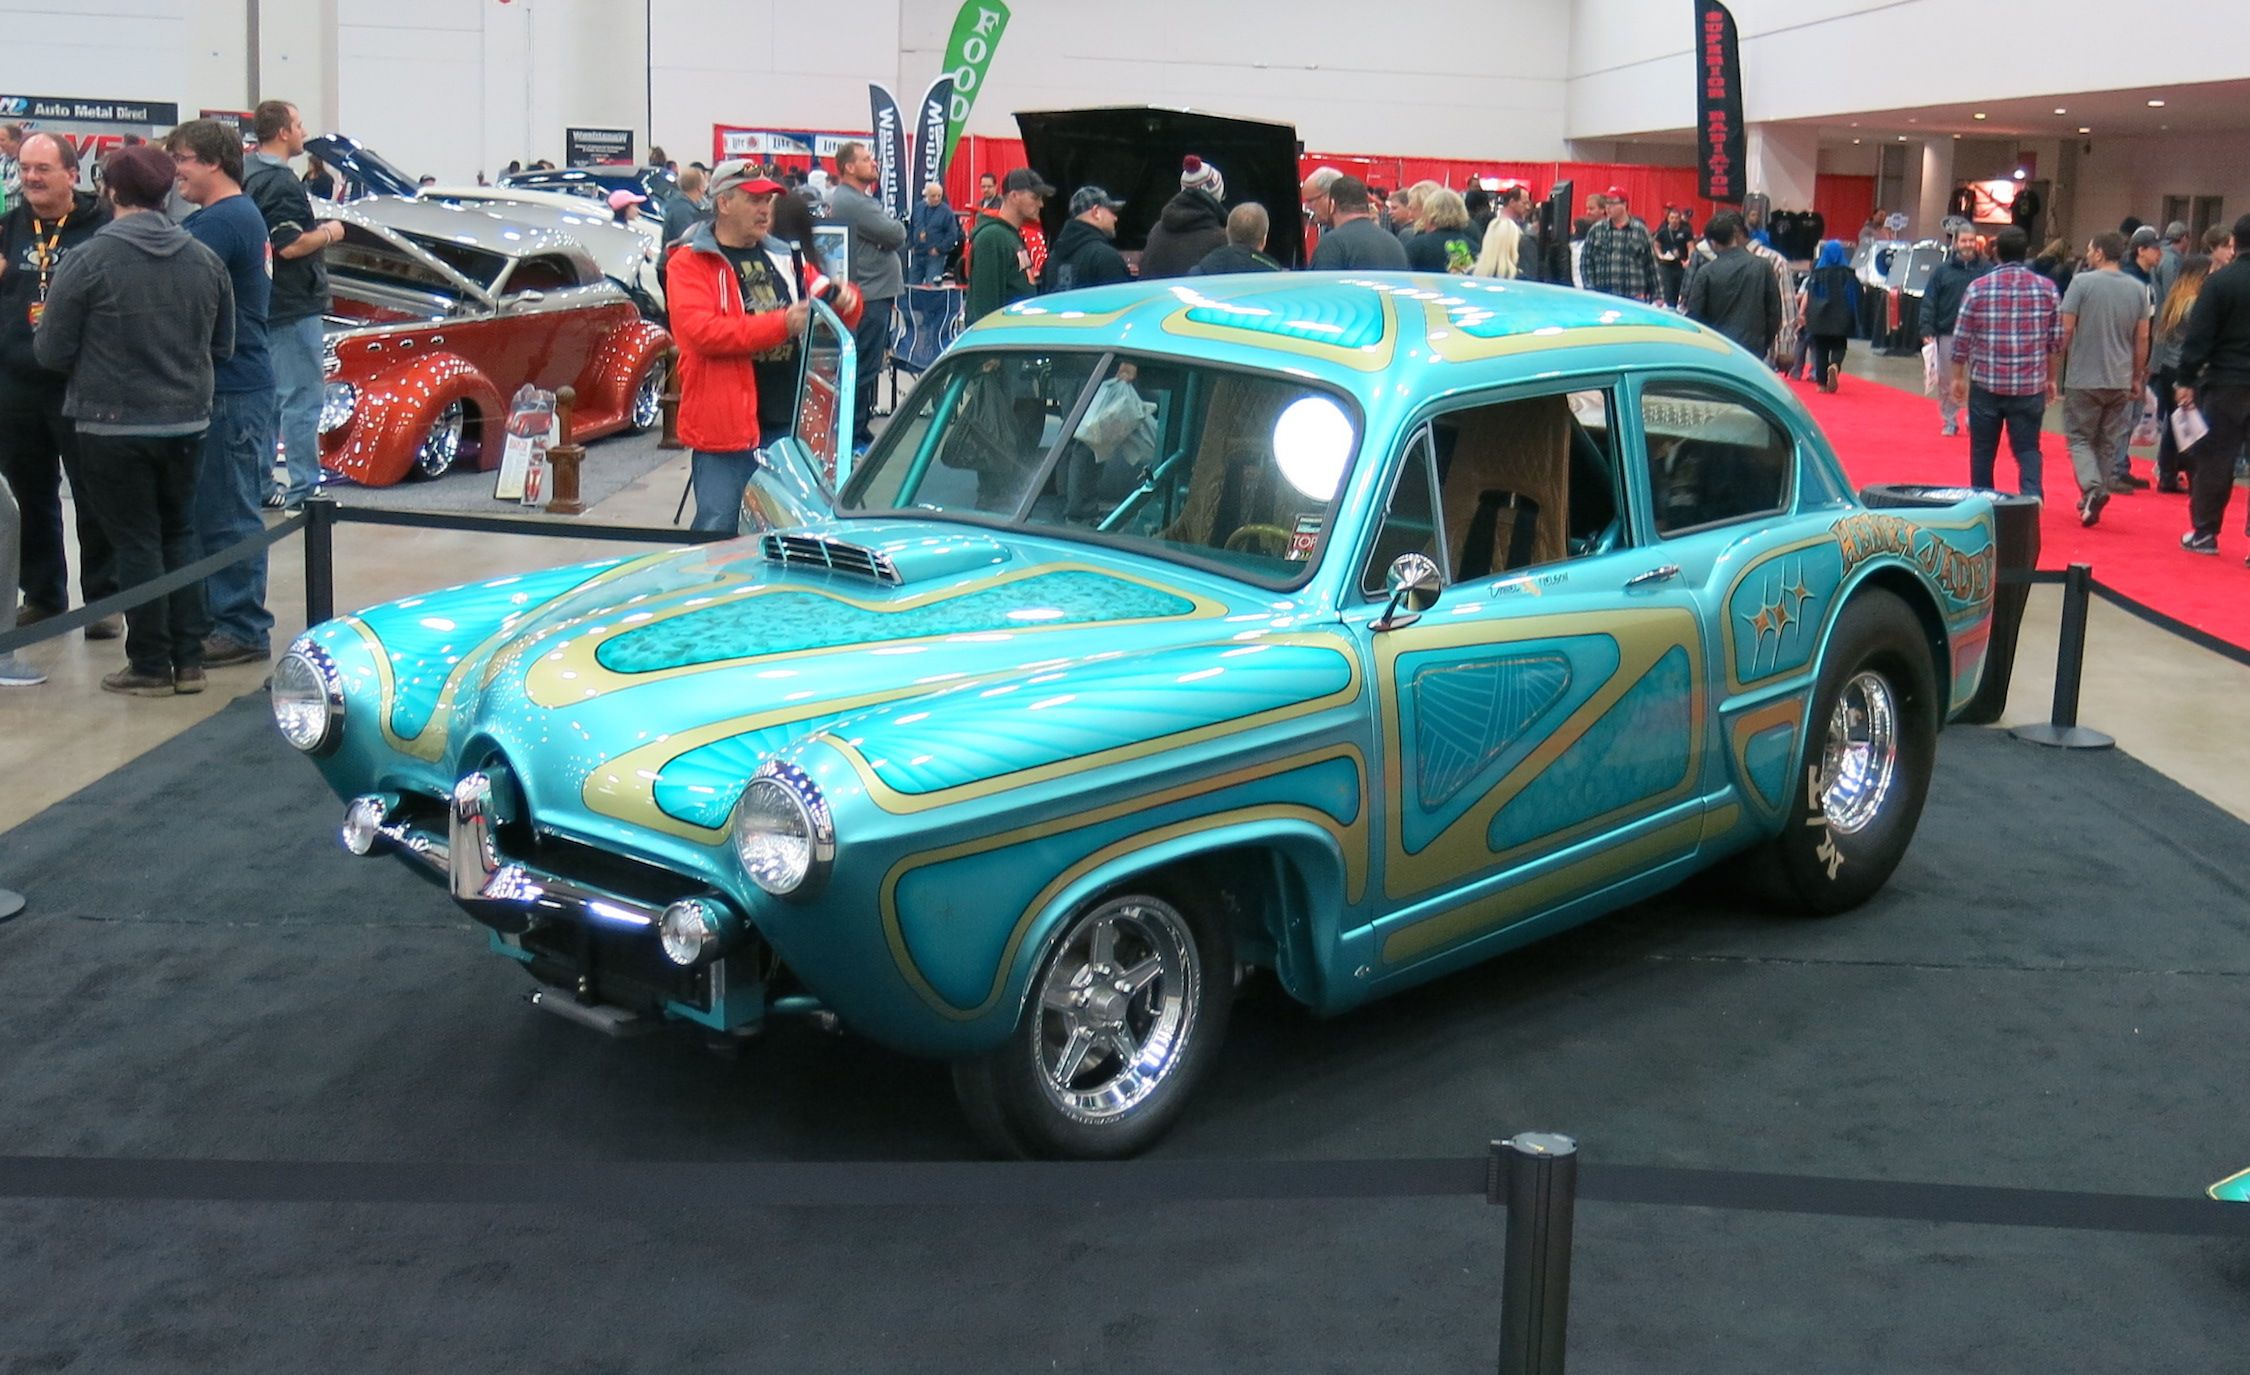 Hottest Rods: The Coolest Custom Classics from the 2017 Autorama ...